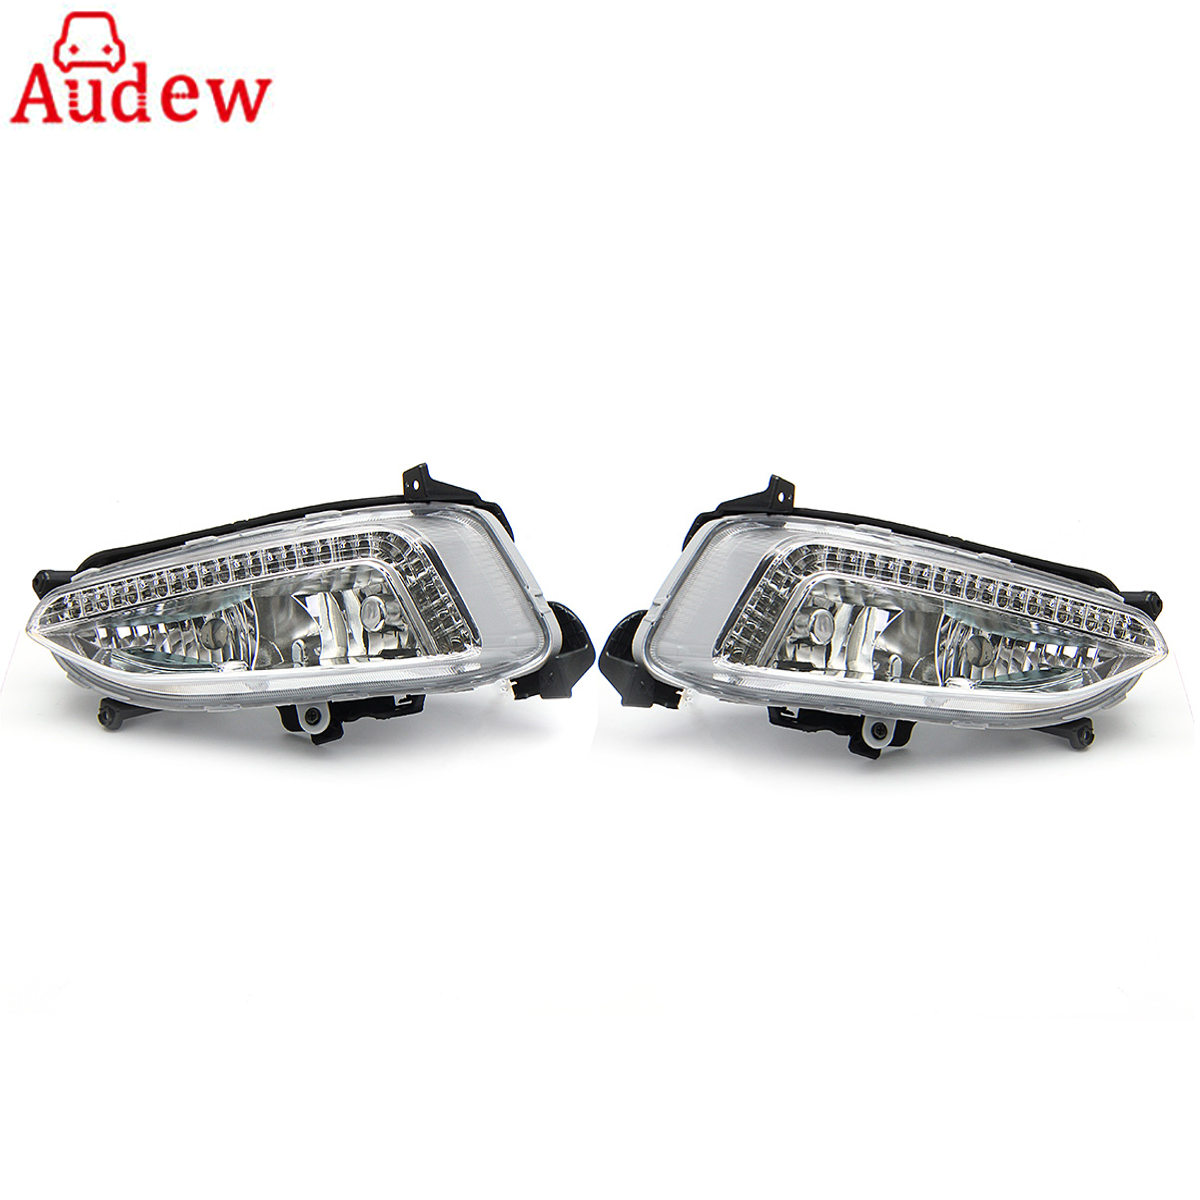 1Pair LED Car Light Assembly DRL Daytime Running Light Fog Lamp For Hyundai IX45 Santa Fe 2013 2014 DC 12V 5500K~6500K 2pcs car led drl daytime running light for hyundai ix45 2013 2014 2015 fog light drl fog lamp 12 led 1pair lot